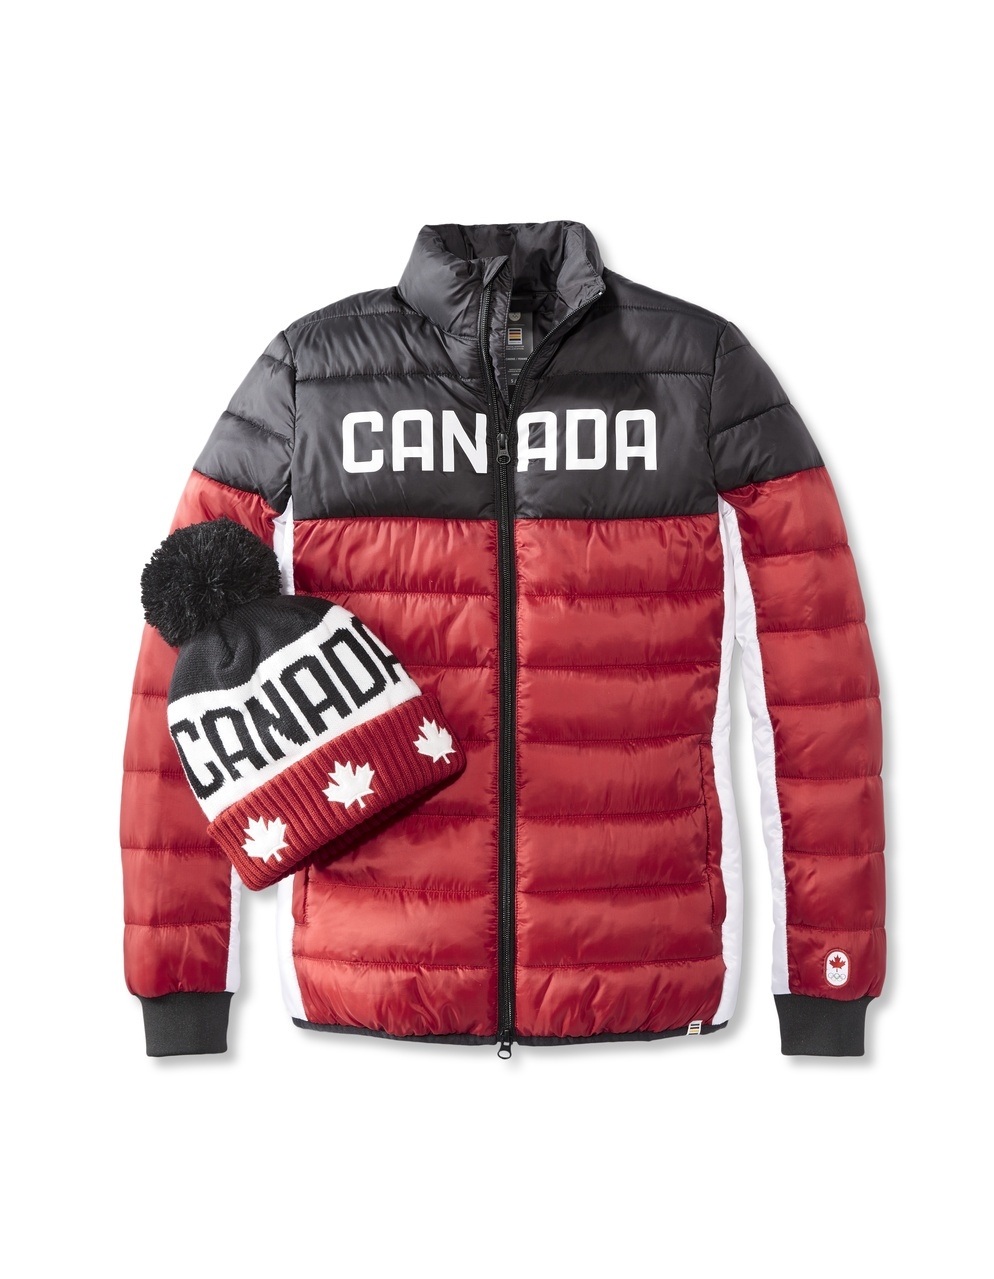 Hudsonu0026#39;s Bay reveals Canadau0026#39;s 2018 Winter Olympic collection (PHOTOS) | Daily Hive Vancouver